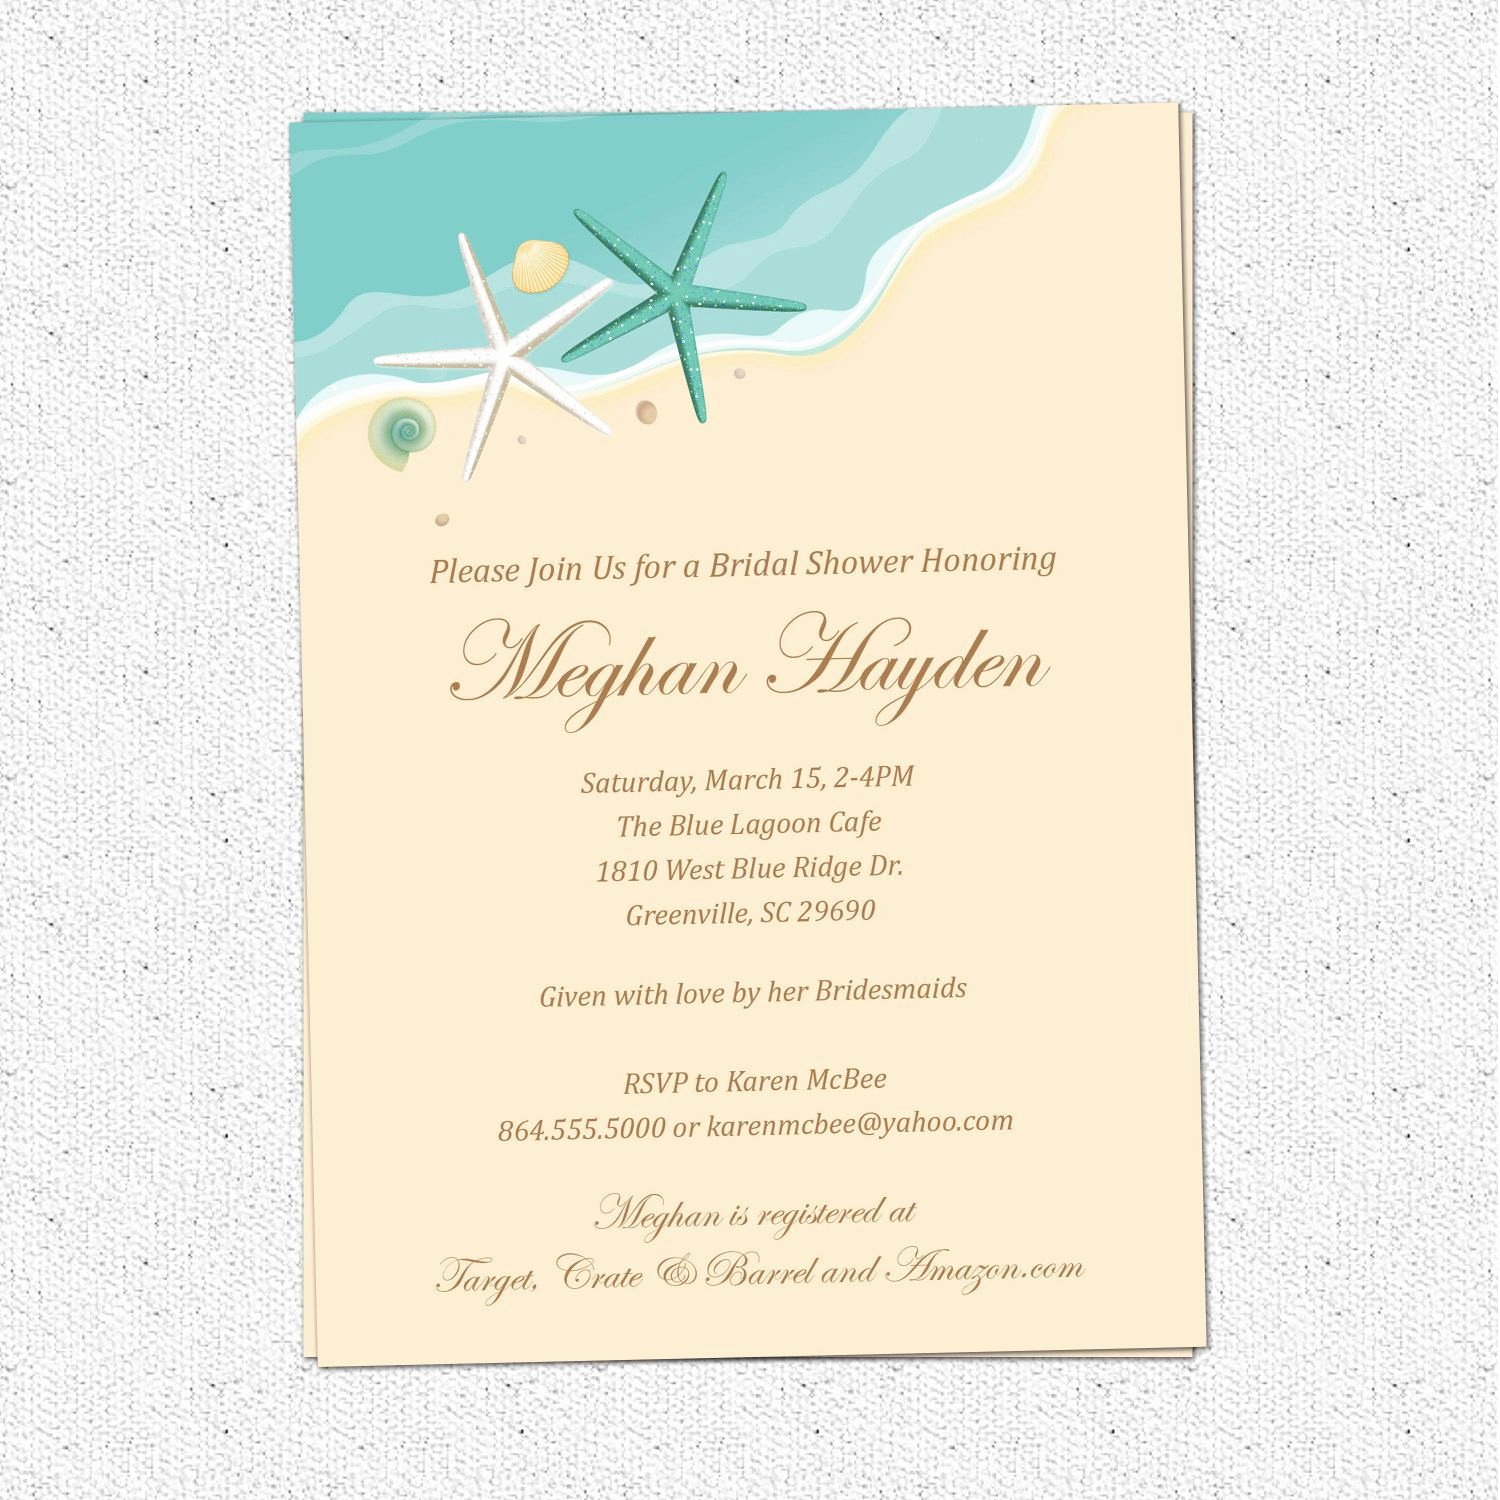 Beach Wedding Invitation Templates Elegant Beach Wedding Invitations Wording Beach Wedding Invitation Wording Casual Invitations